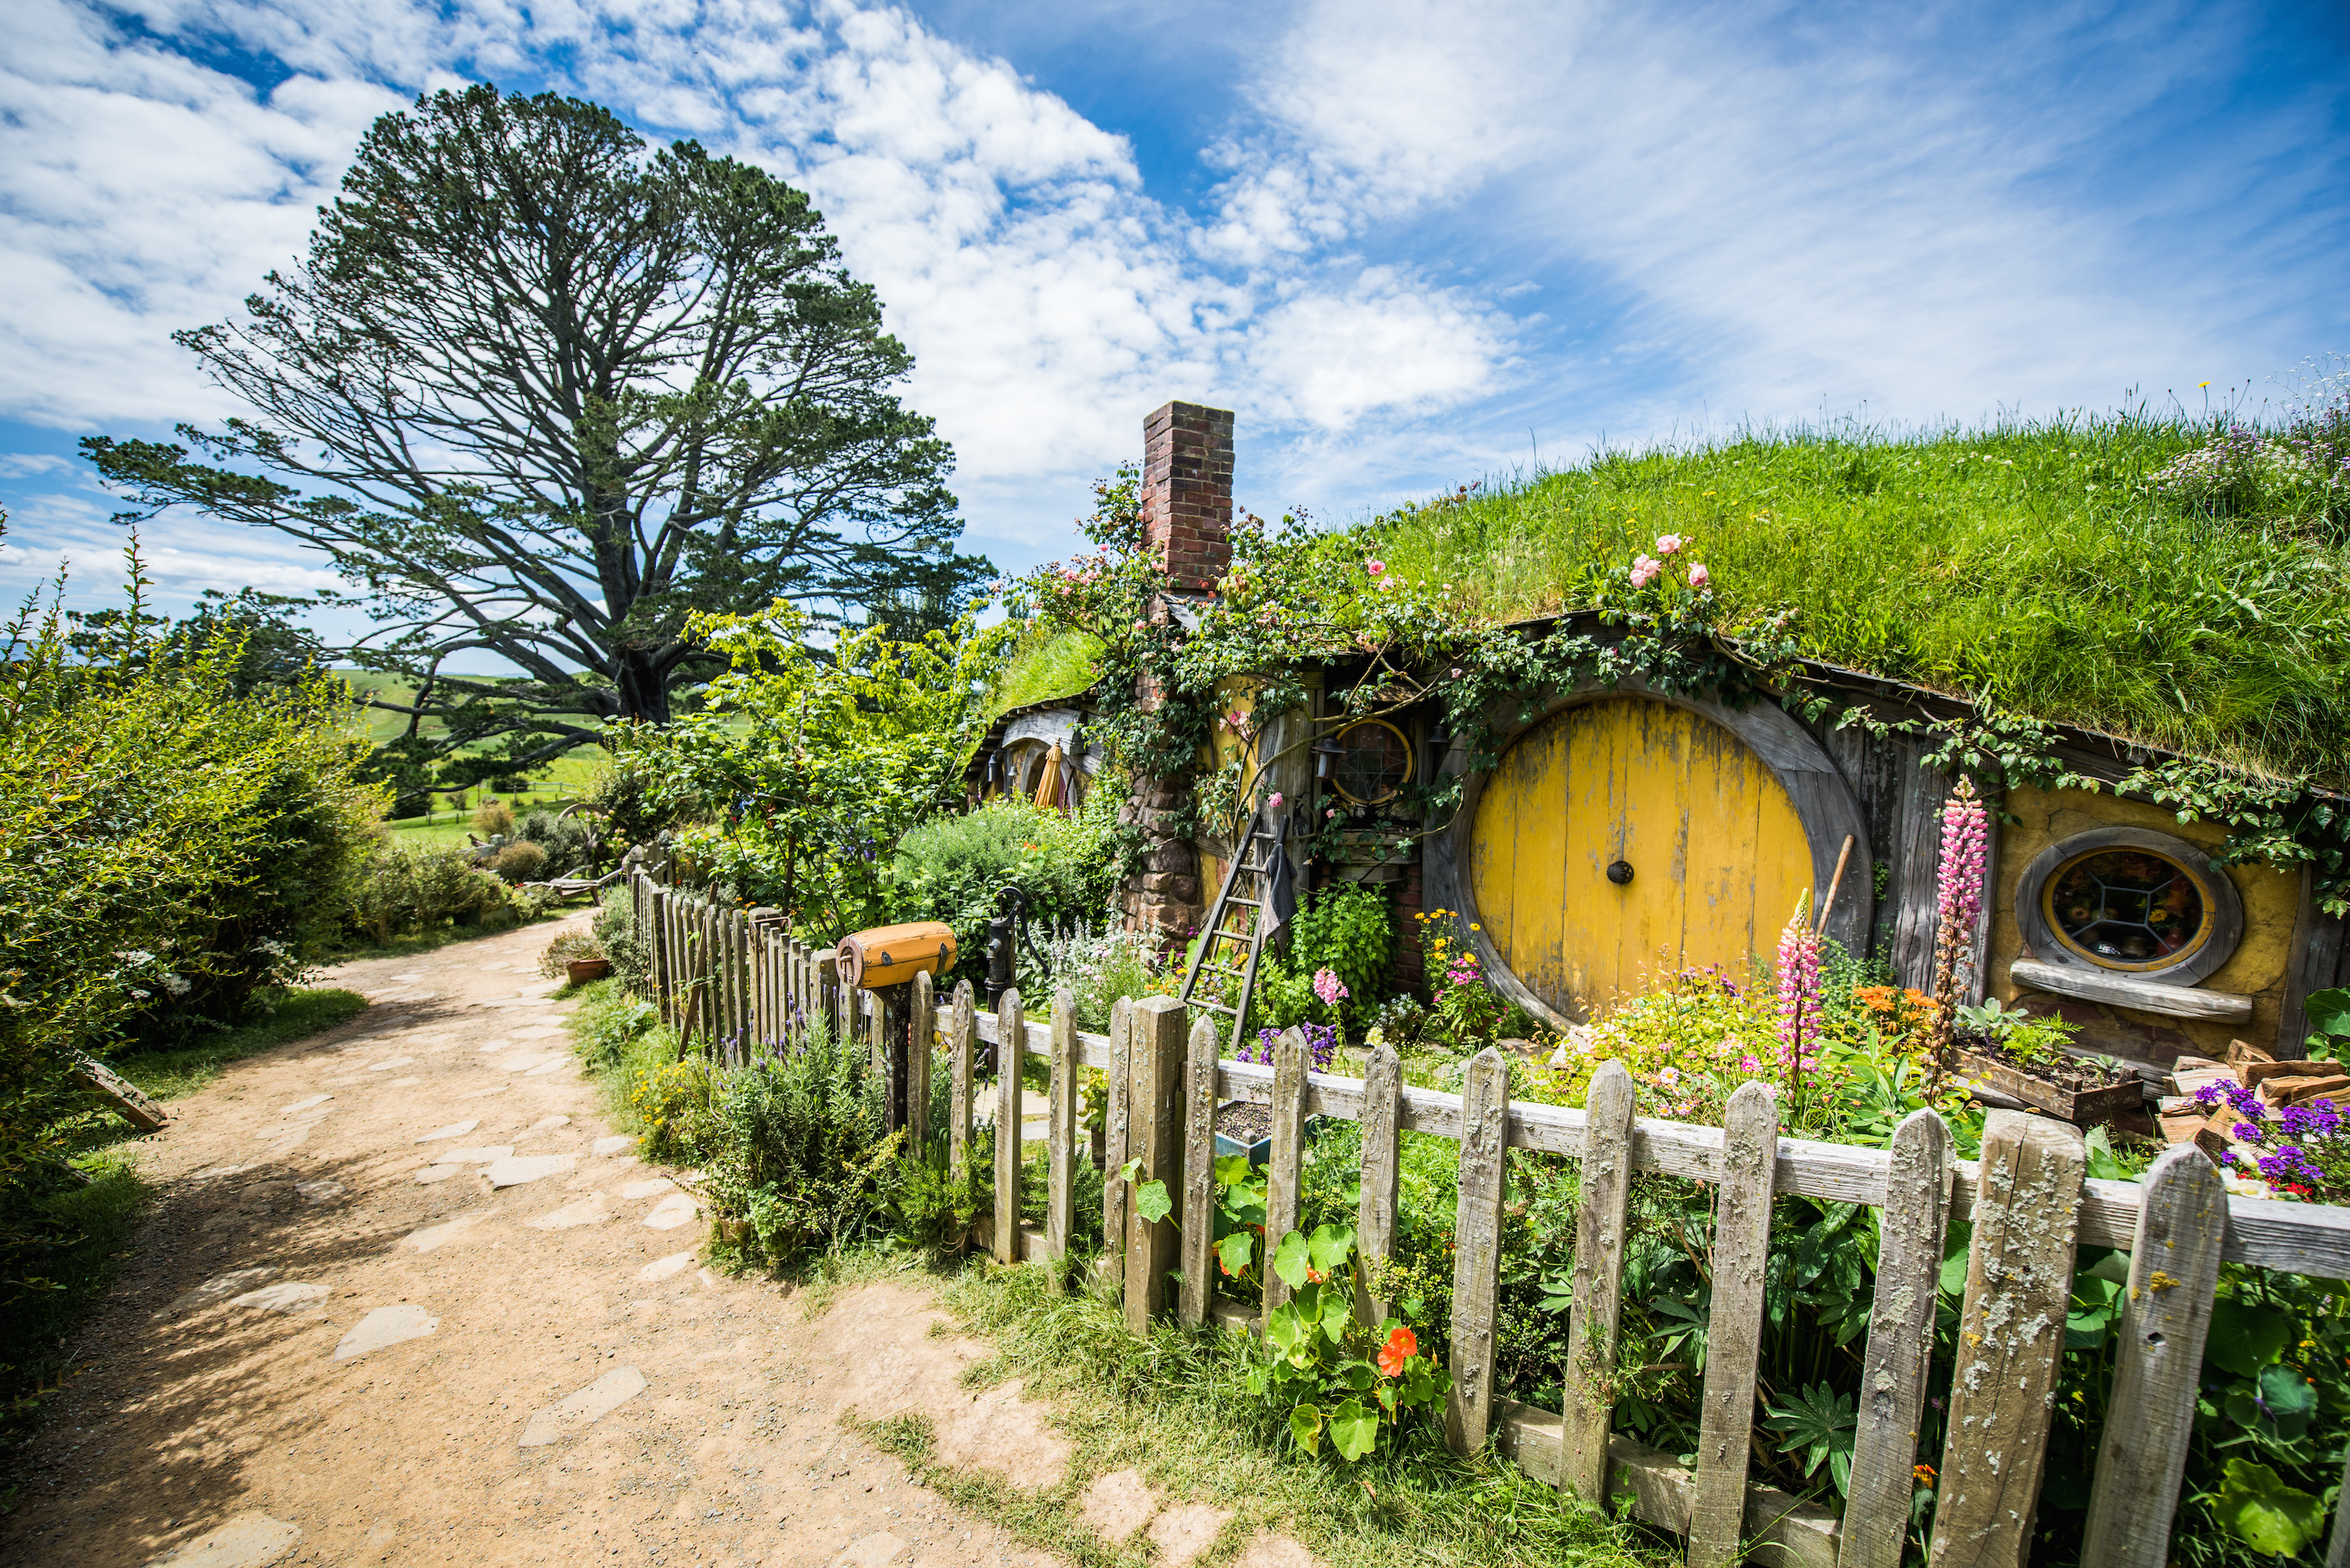 Island Home Of The Hobbit In Lord Of The Rings